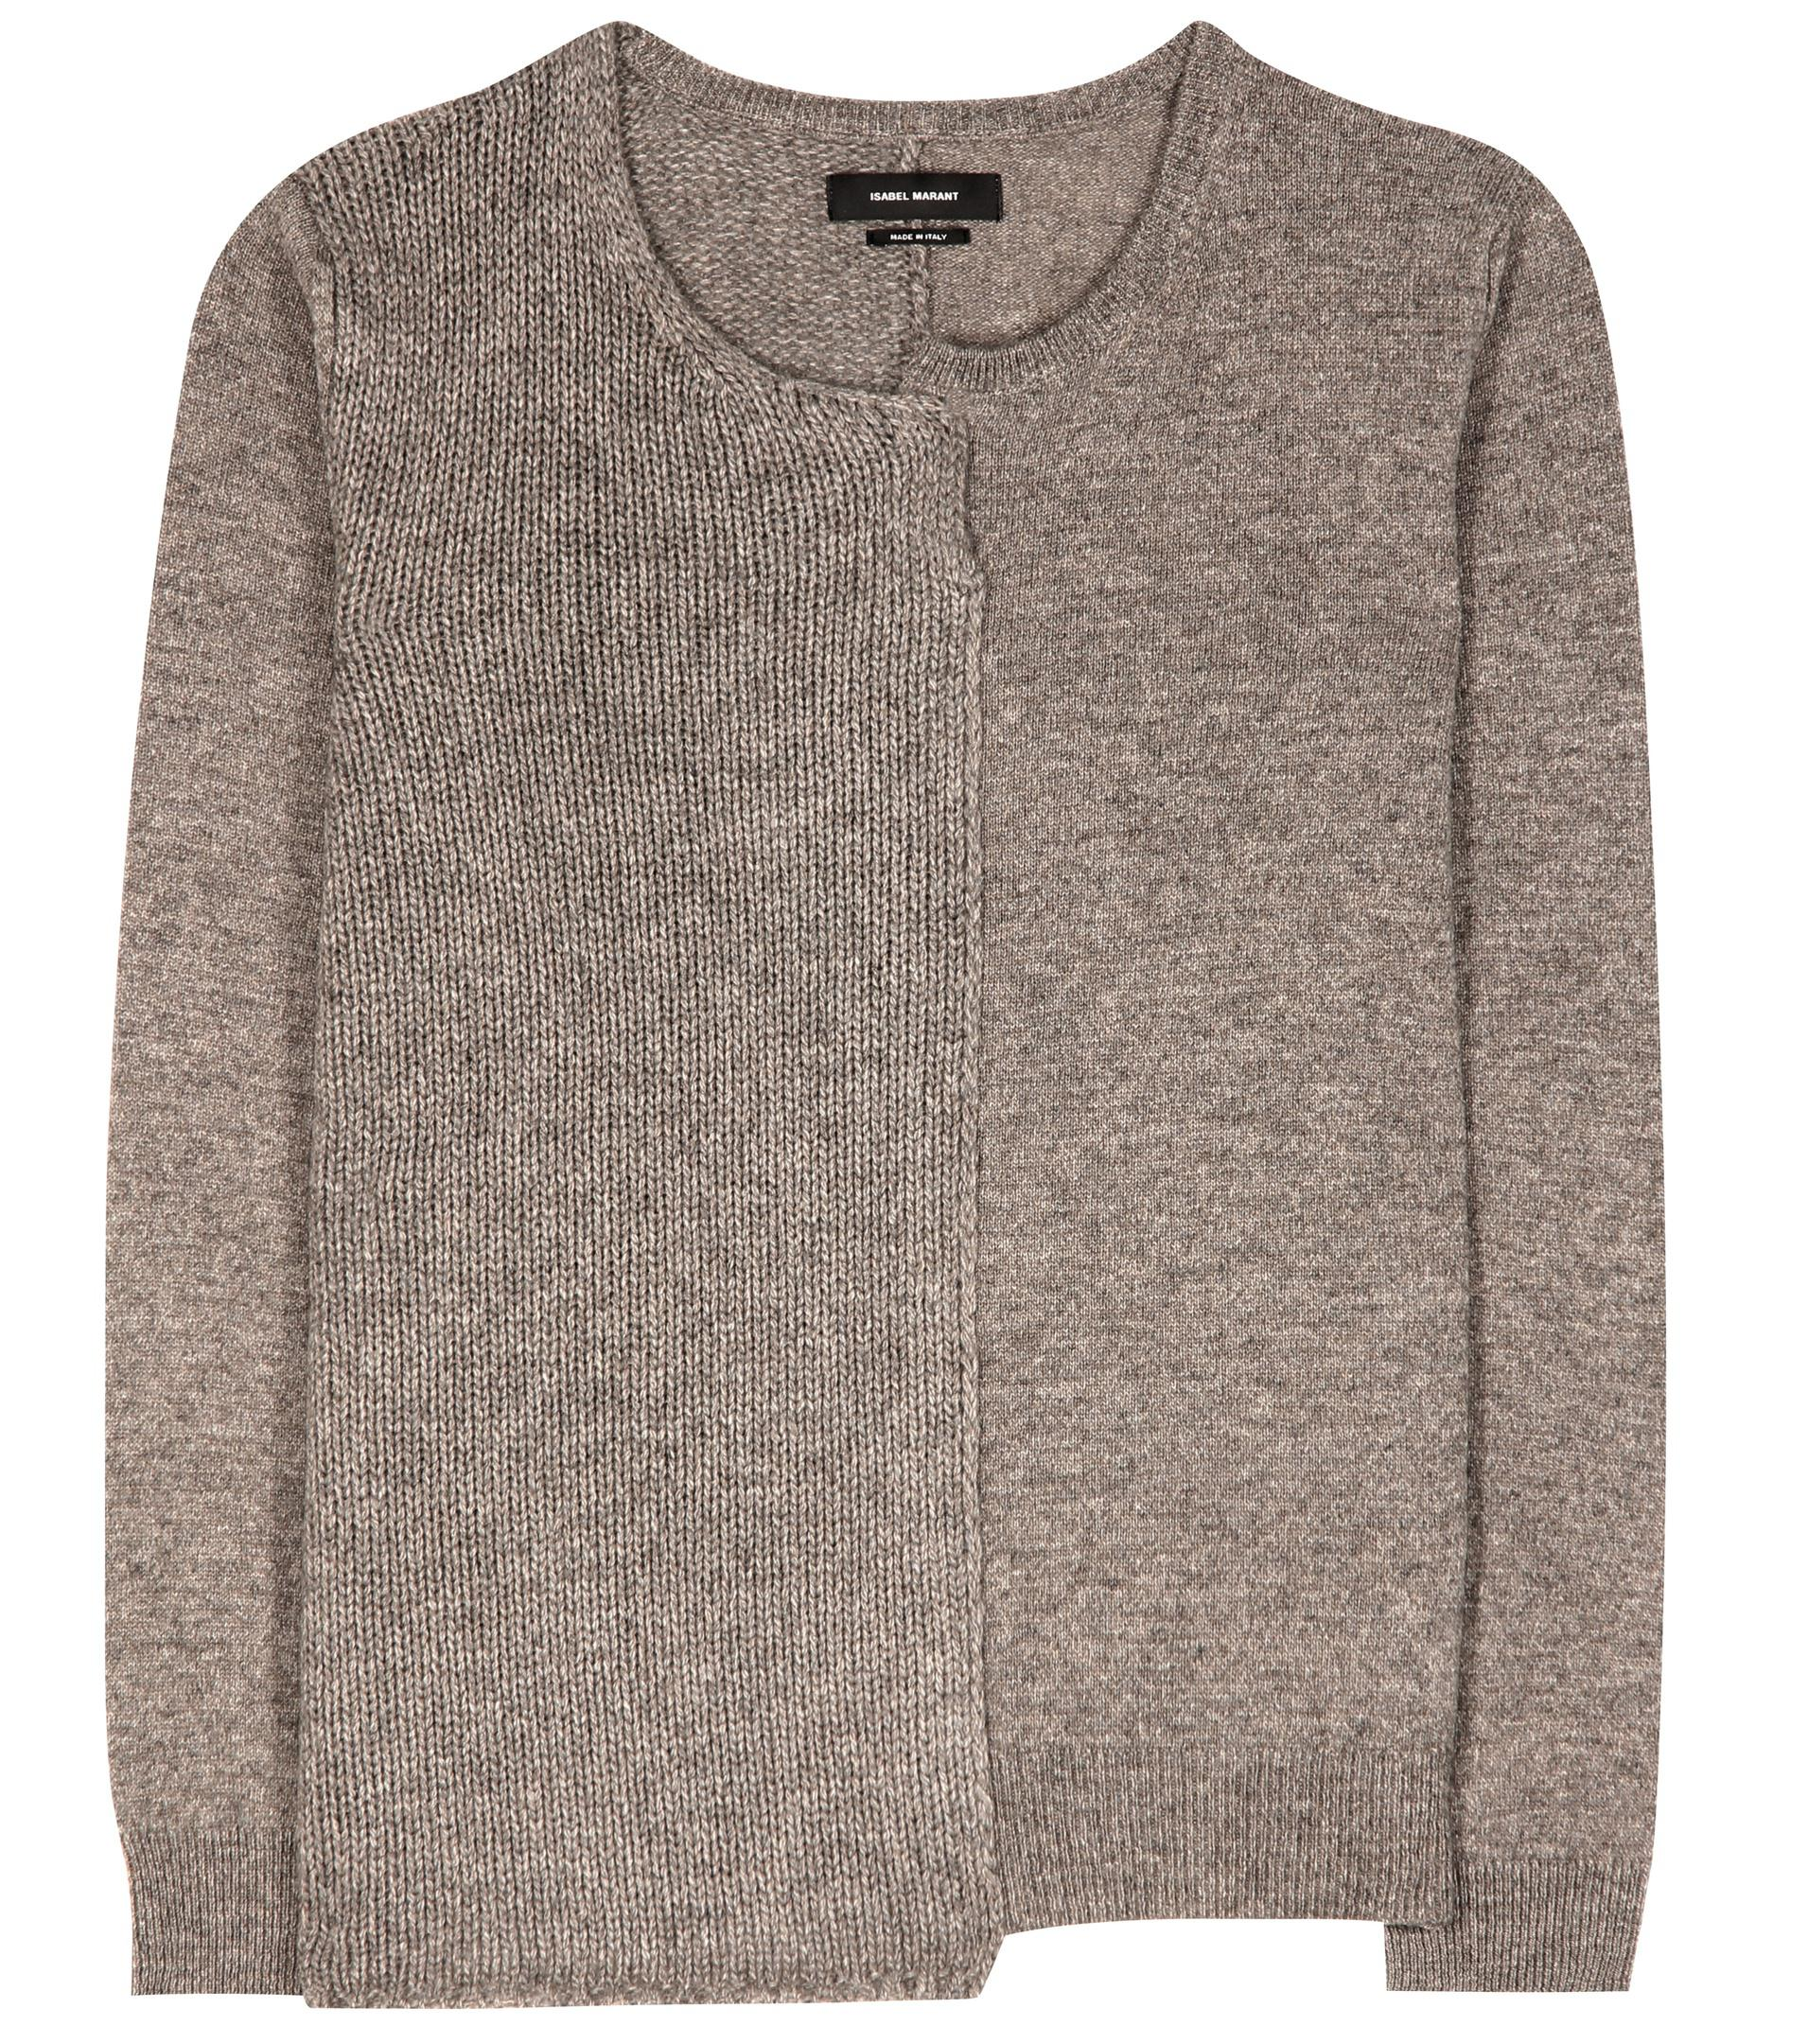 Isabel marant Calgary Wool, Yak And Cotton Sweater in Brown | Lyst